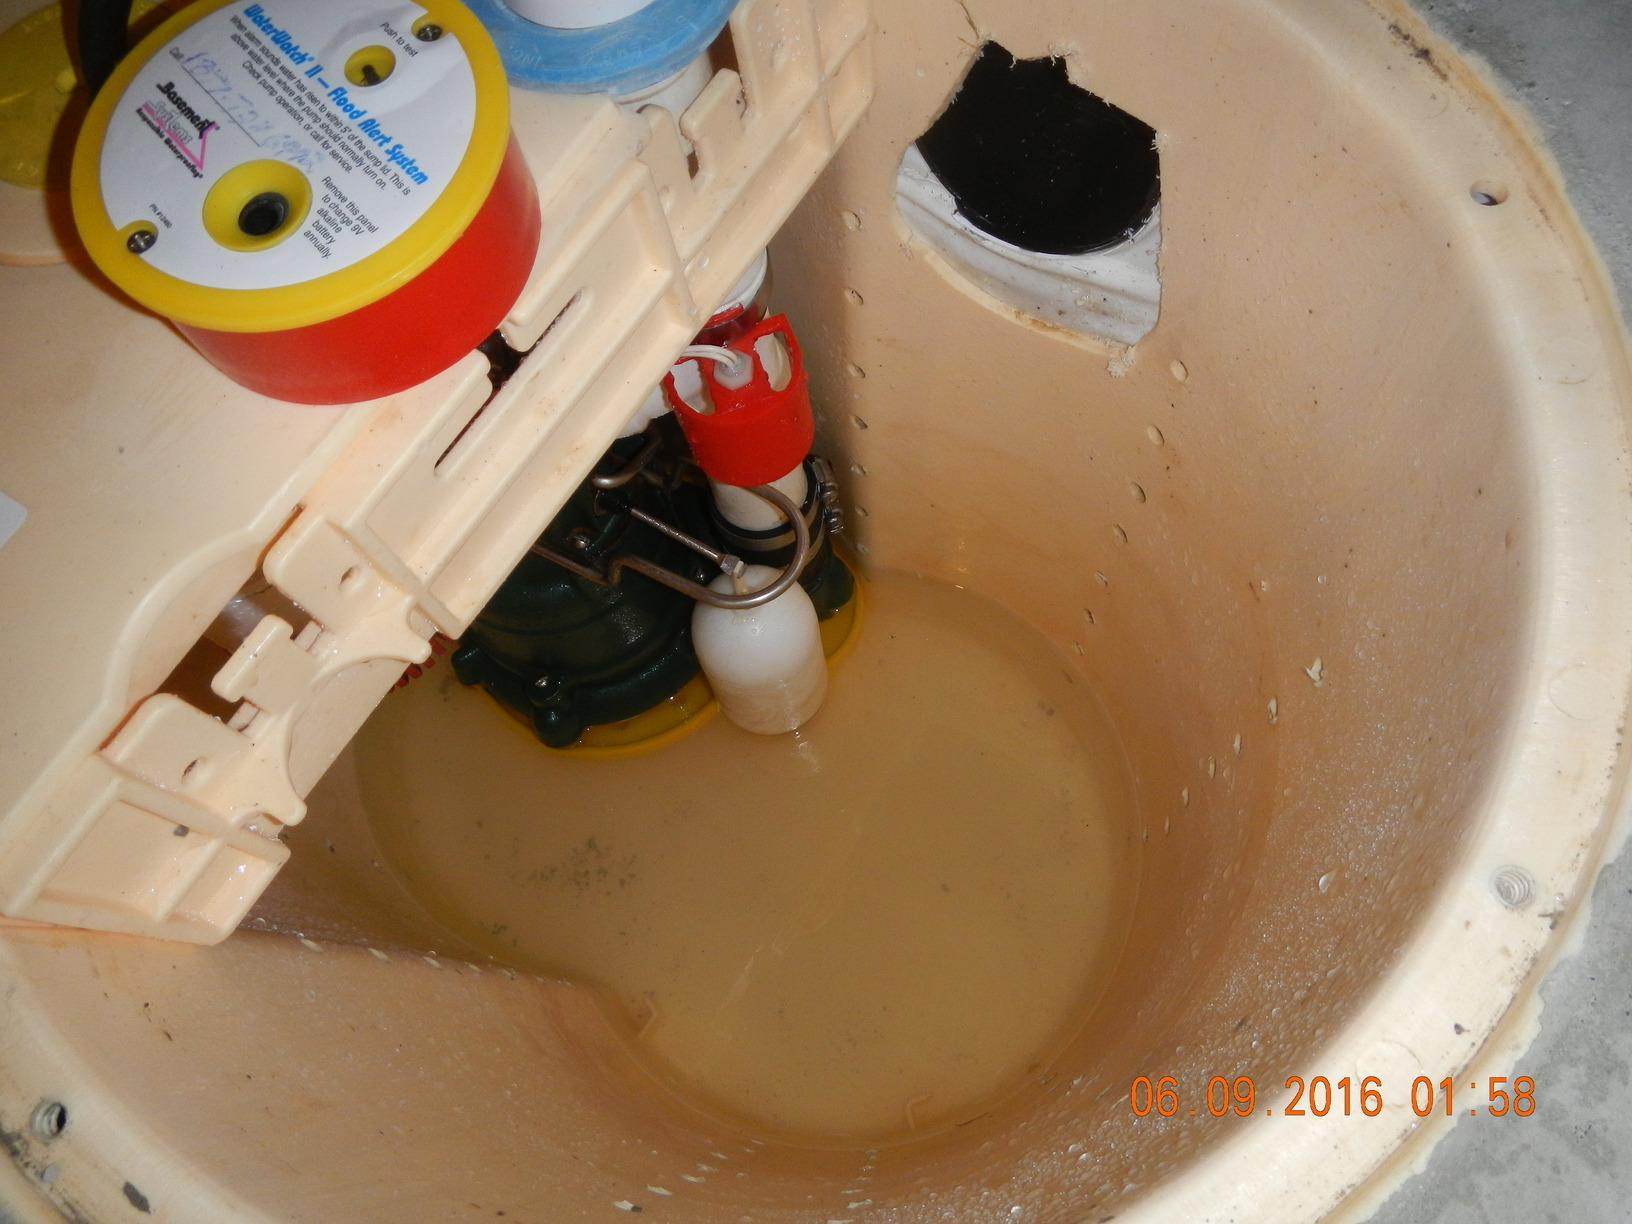 Annual Sump Pump Service in Anacortes Crawl Space - After Photo